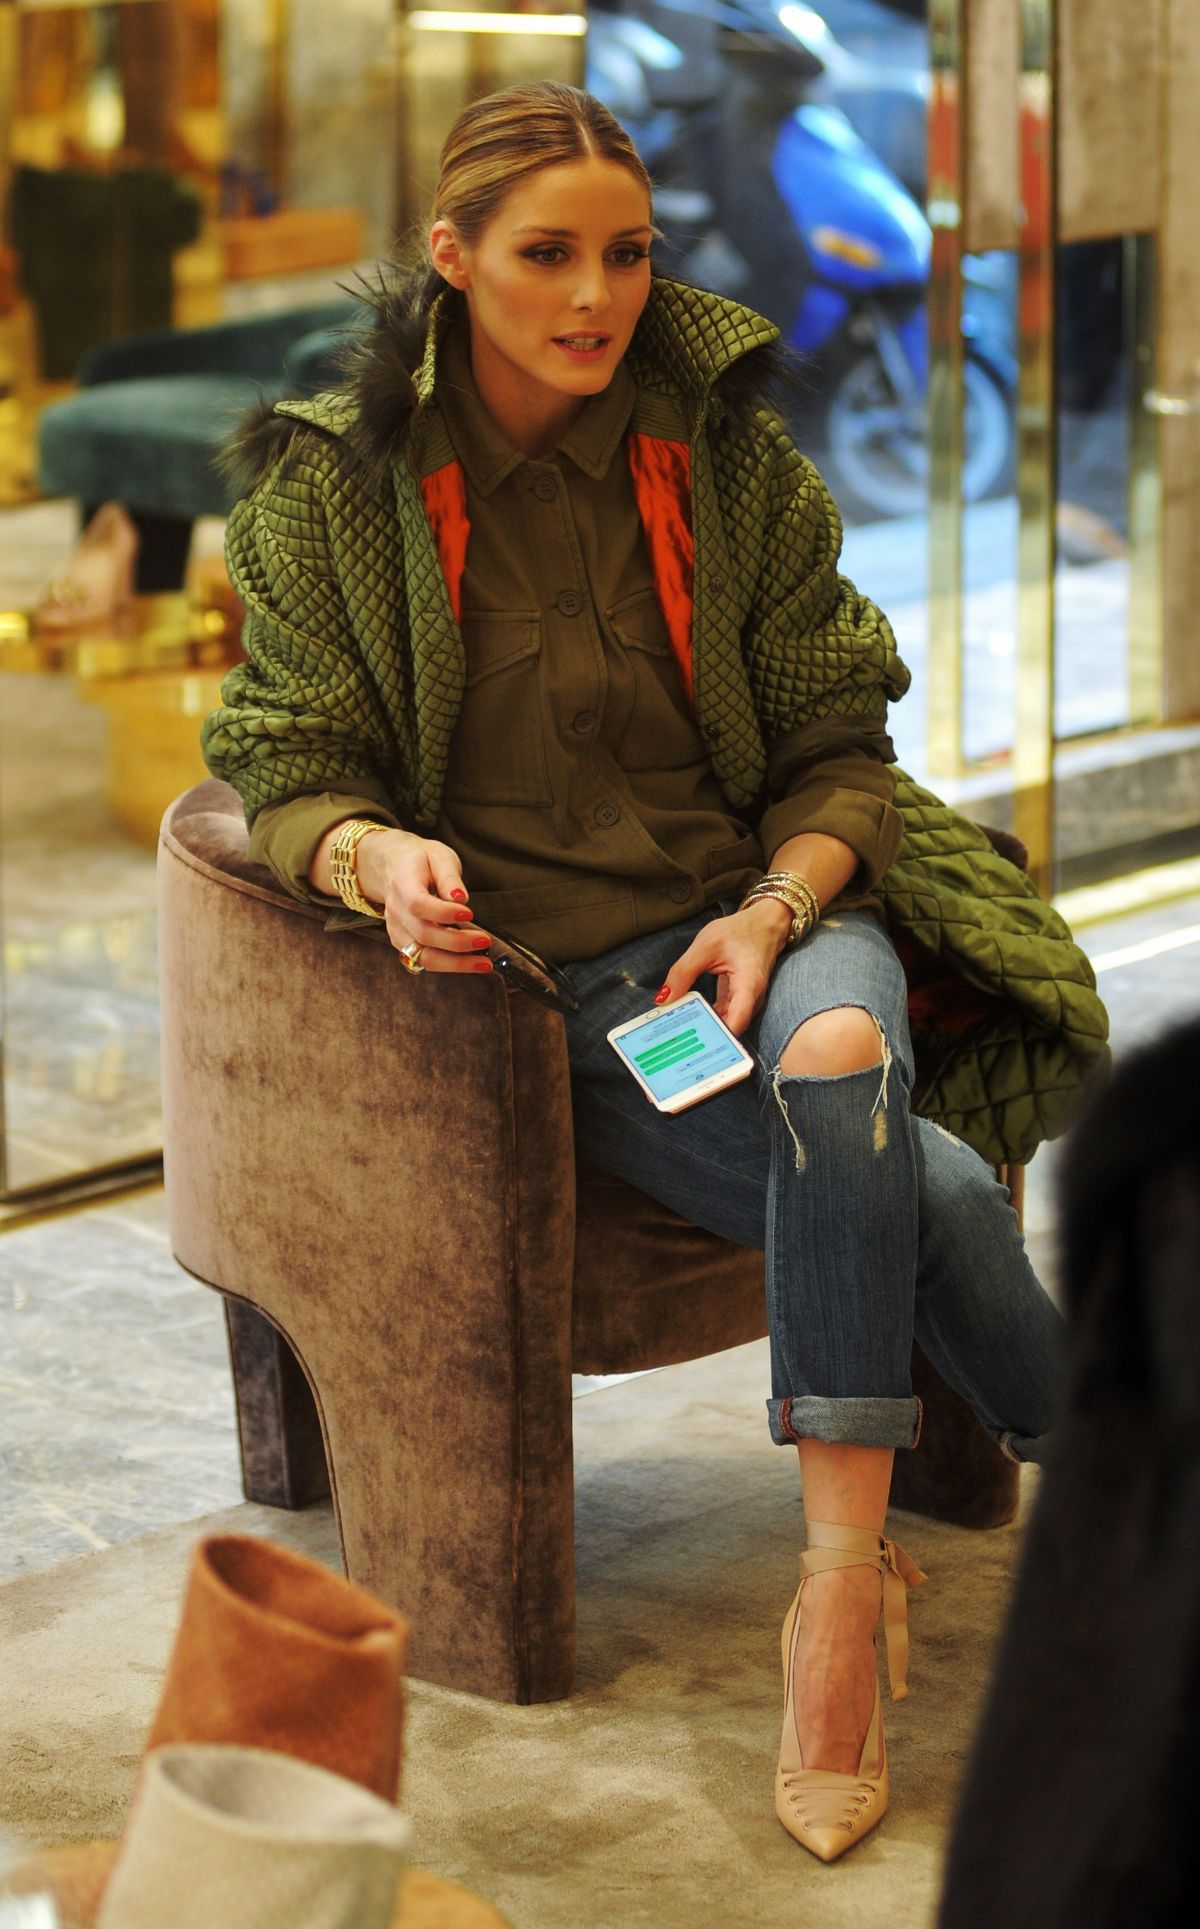 25 all time best pictures of olivia palermo style and fashion - Olivia Palermo Out Shopping In Milan 02 25 2017